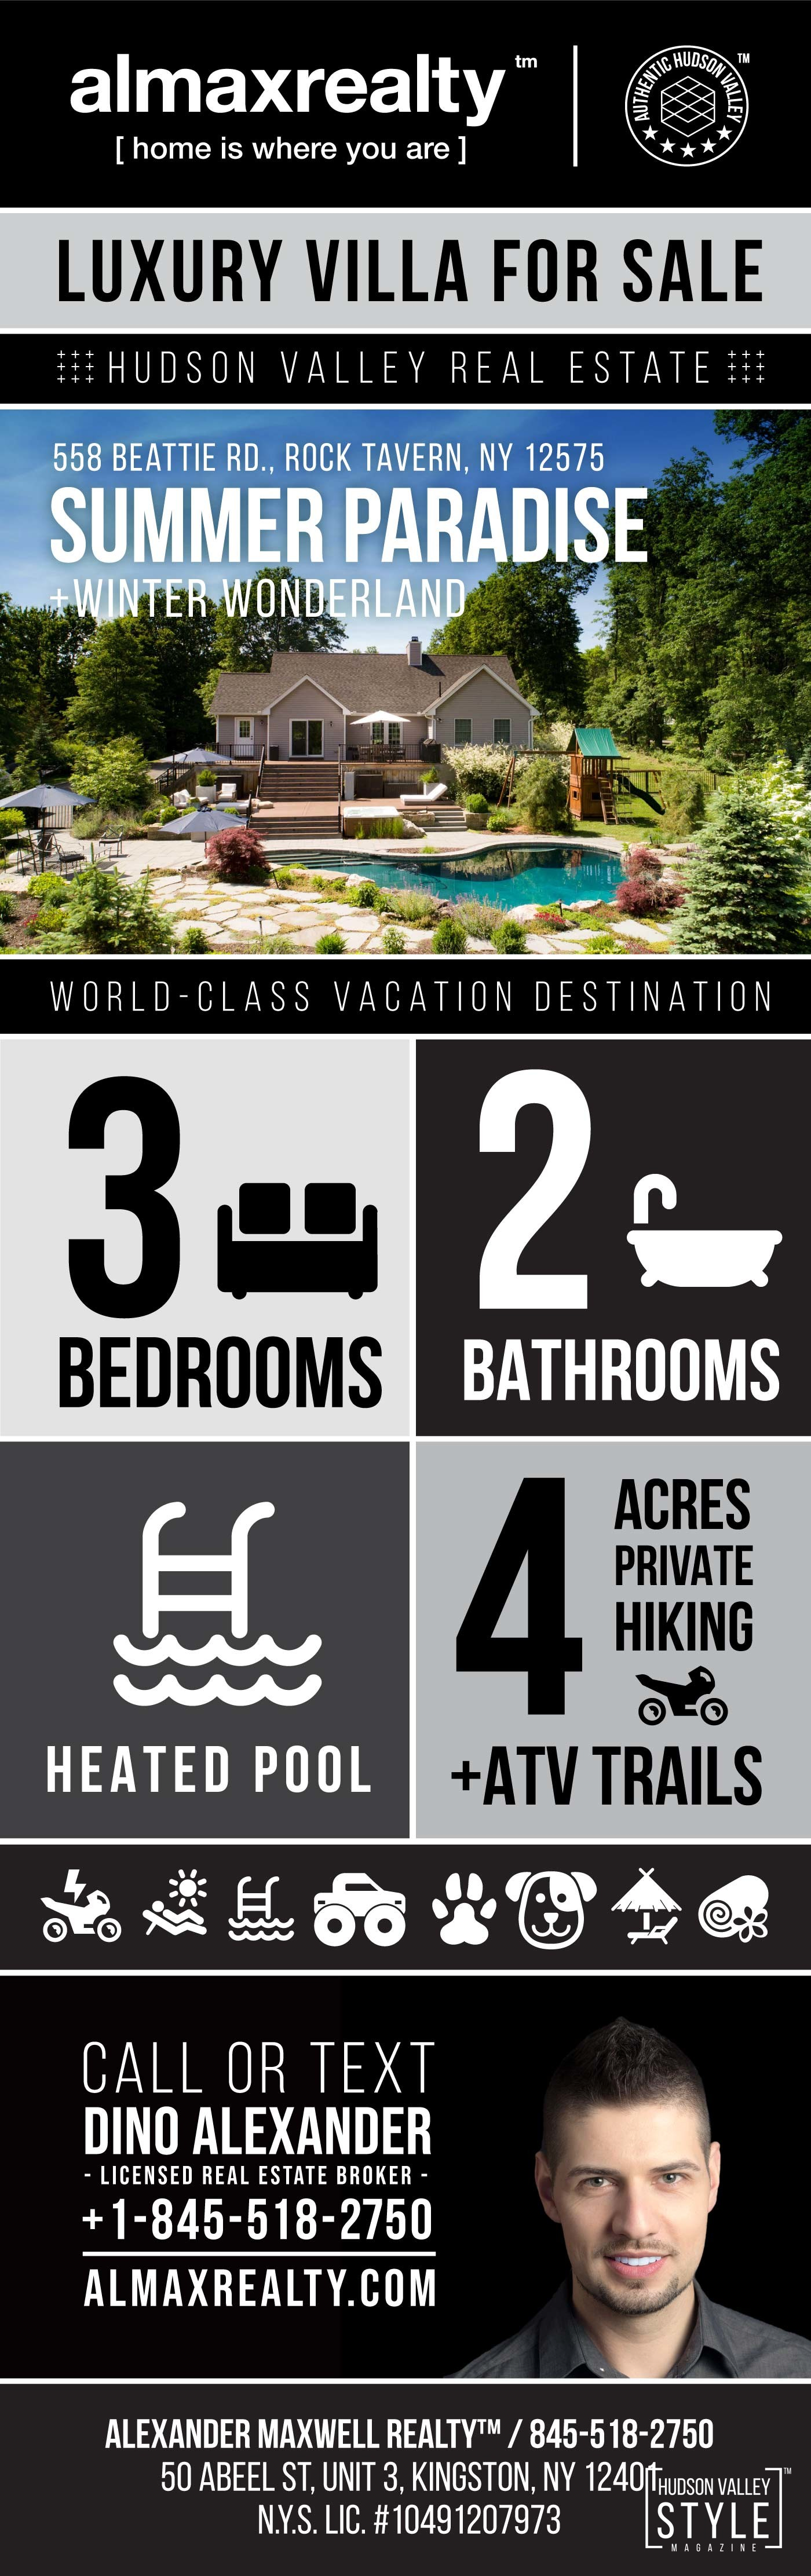 Alexander Maxwell Realty Infographic: Luxury Hudson Valley Home for Sale in Rock Tavern, NY